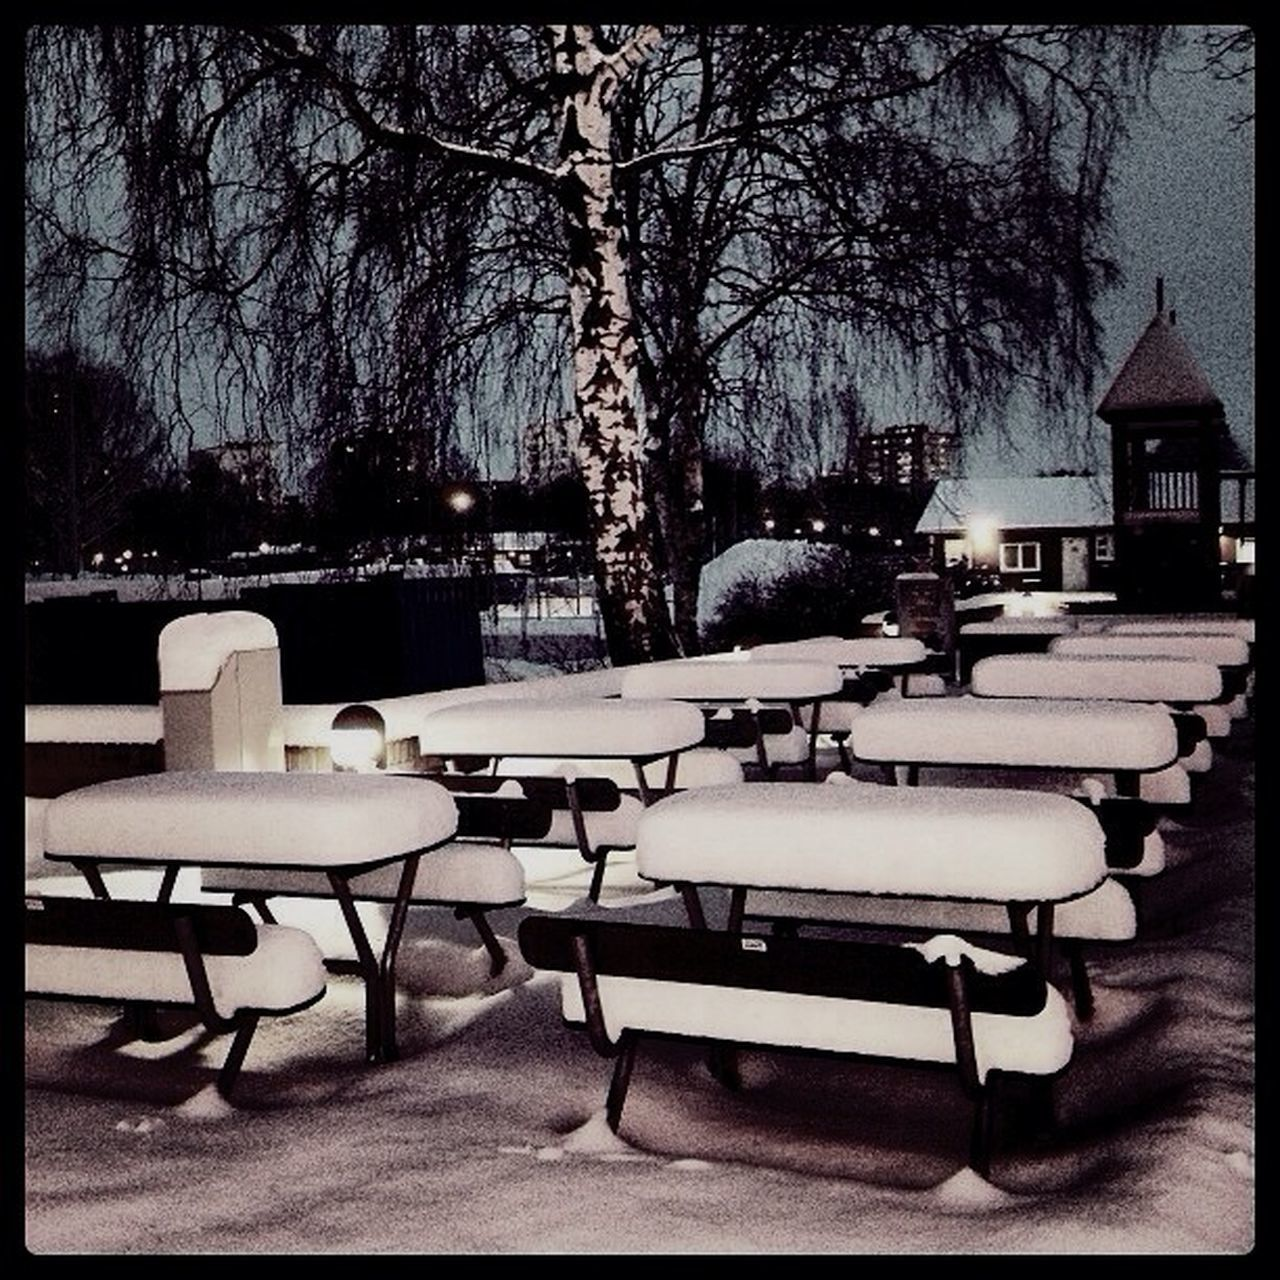 Stockholm's Winter ! Horror Check out OfanPhotography